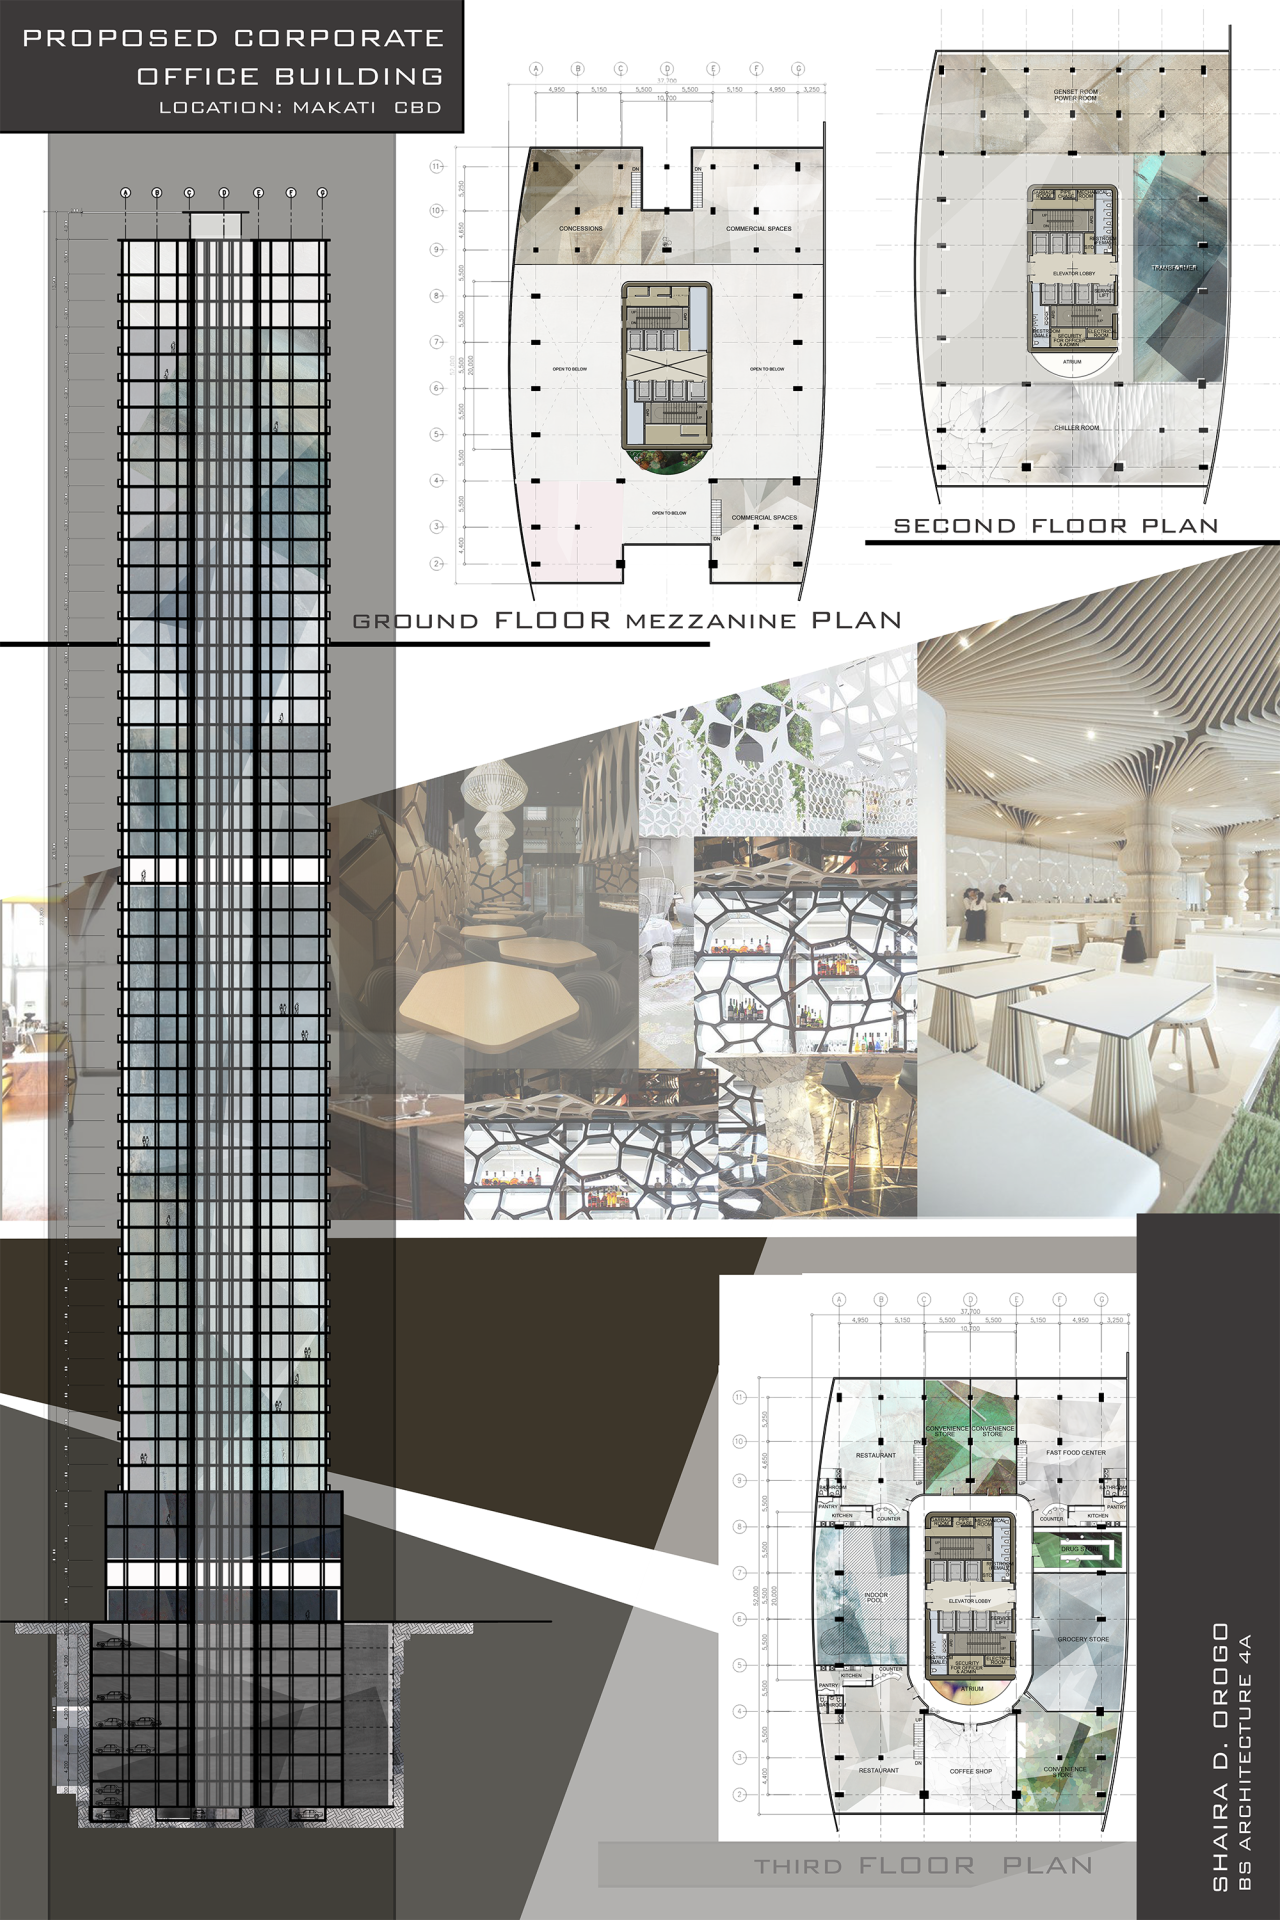 Figure Me Out Design 8 Proposed Corporate Office Building Architecture Building Design Office Building Office Building Plans